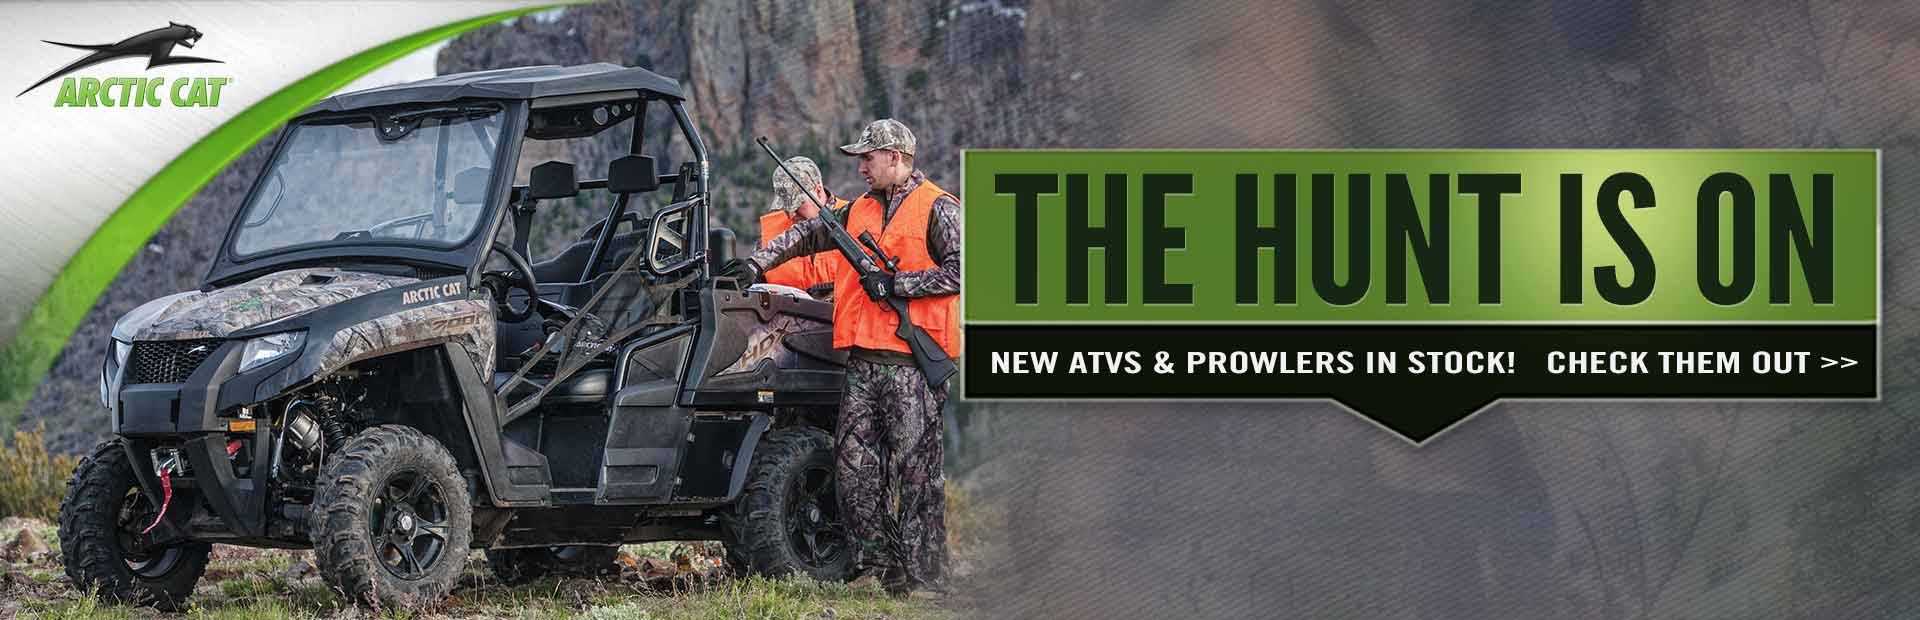 The hunt is on! Click here to check out new Arctic Cat ATVs and Prowlers.